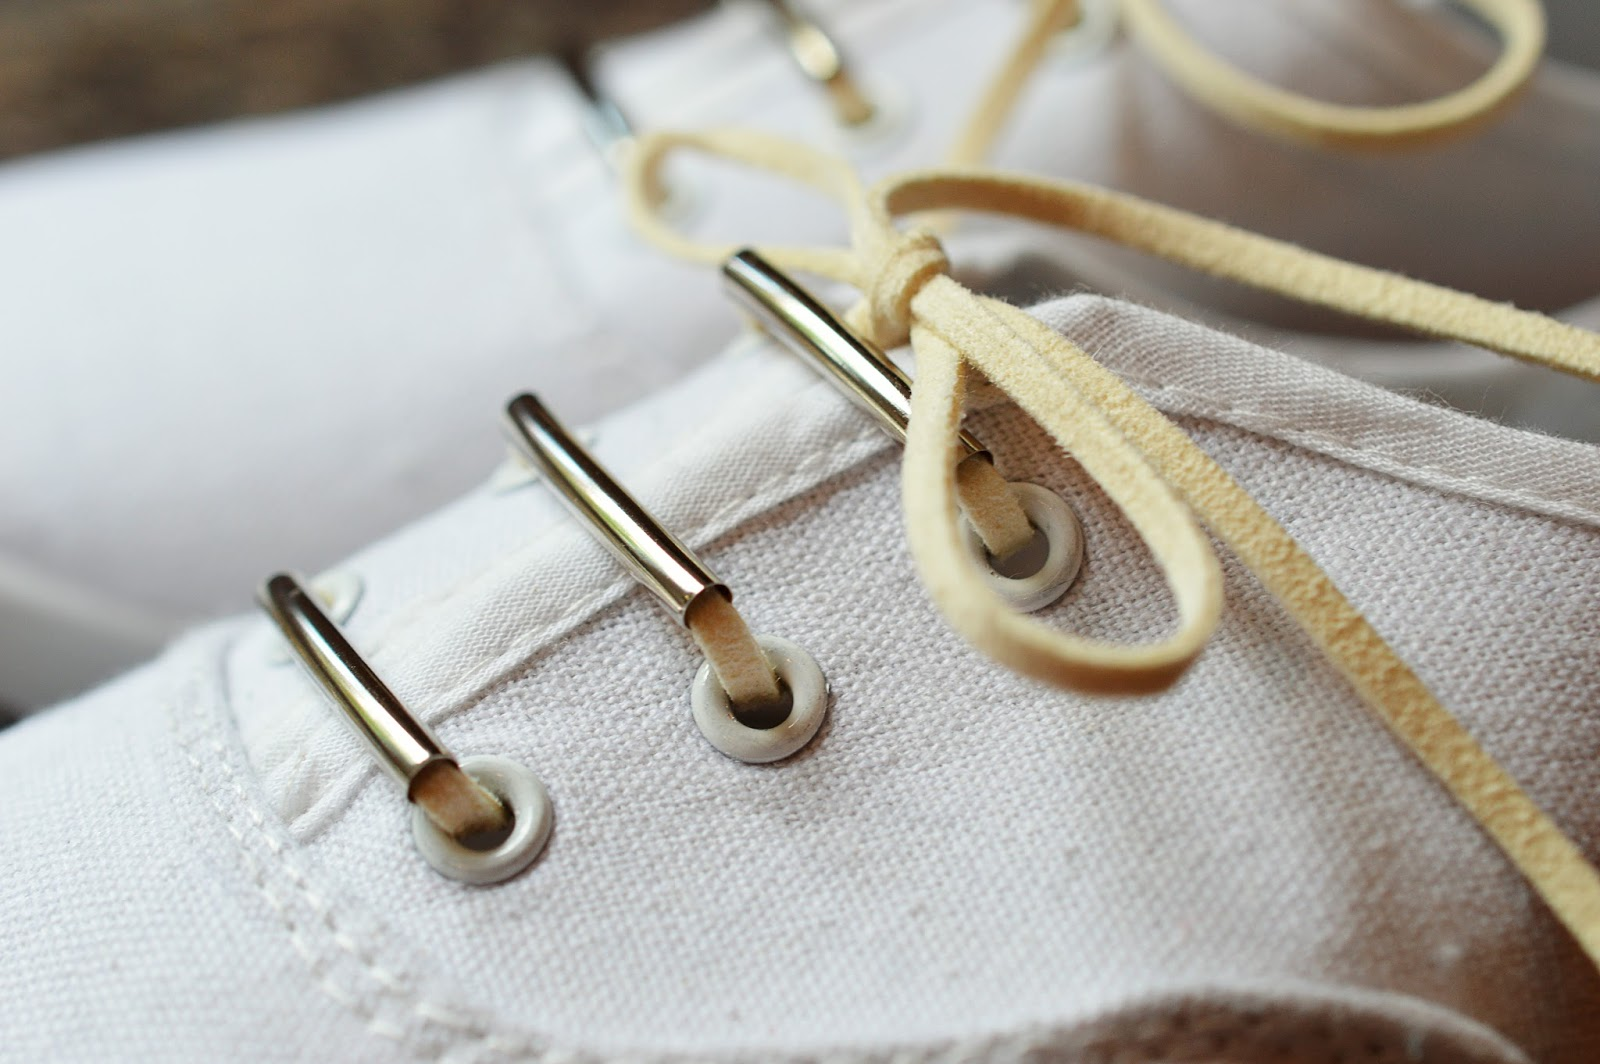 DIY Beaded Shoe Laces | Motte's Blog